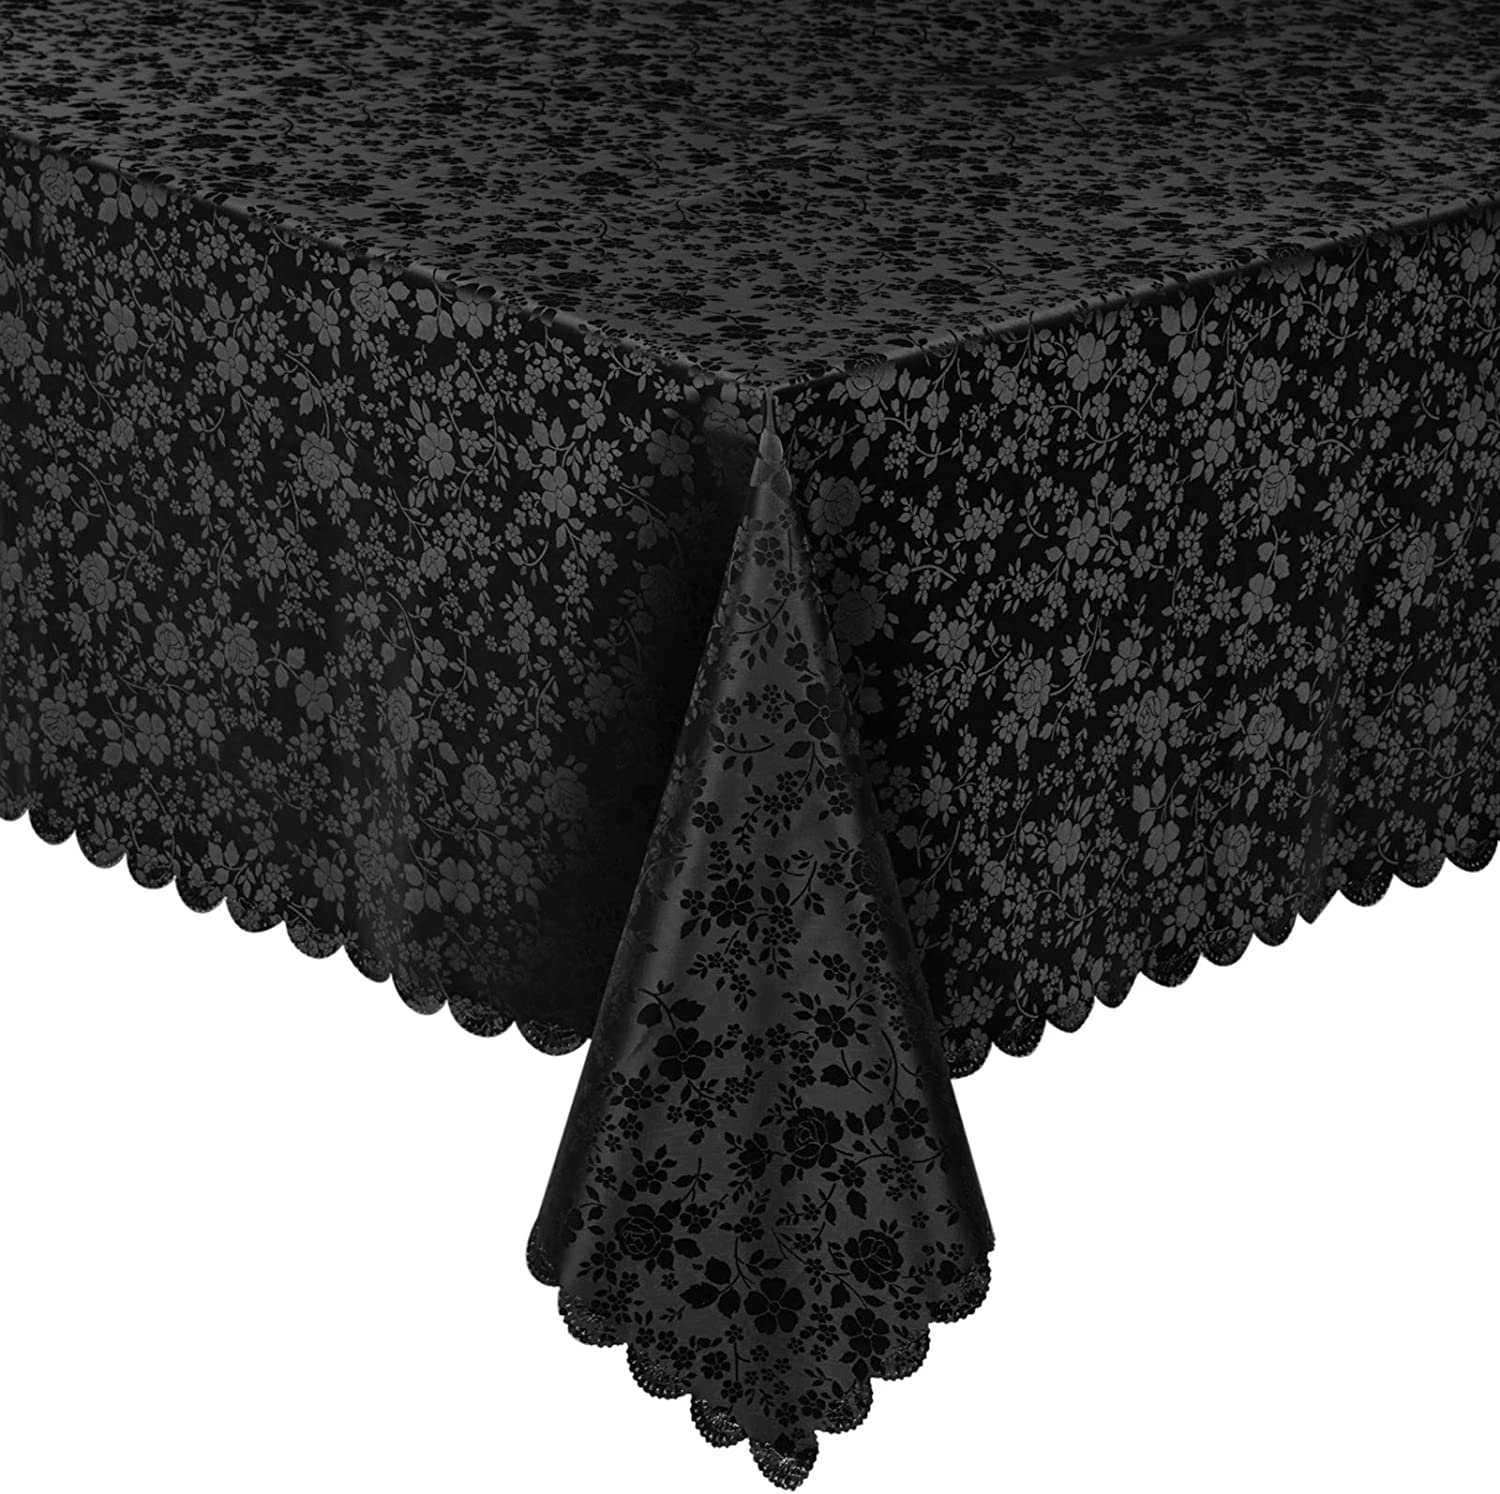 MONFINO Retangular Tablecloth,Waterproof Vinyl Table Cloth,Easy Care Dining Table Cover for Indoor and Outdoor Use (60''x120'', Black)